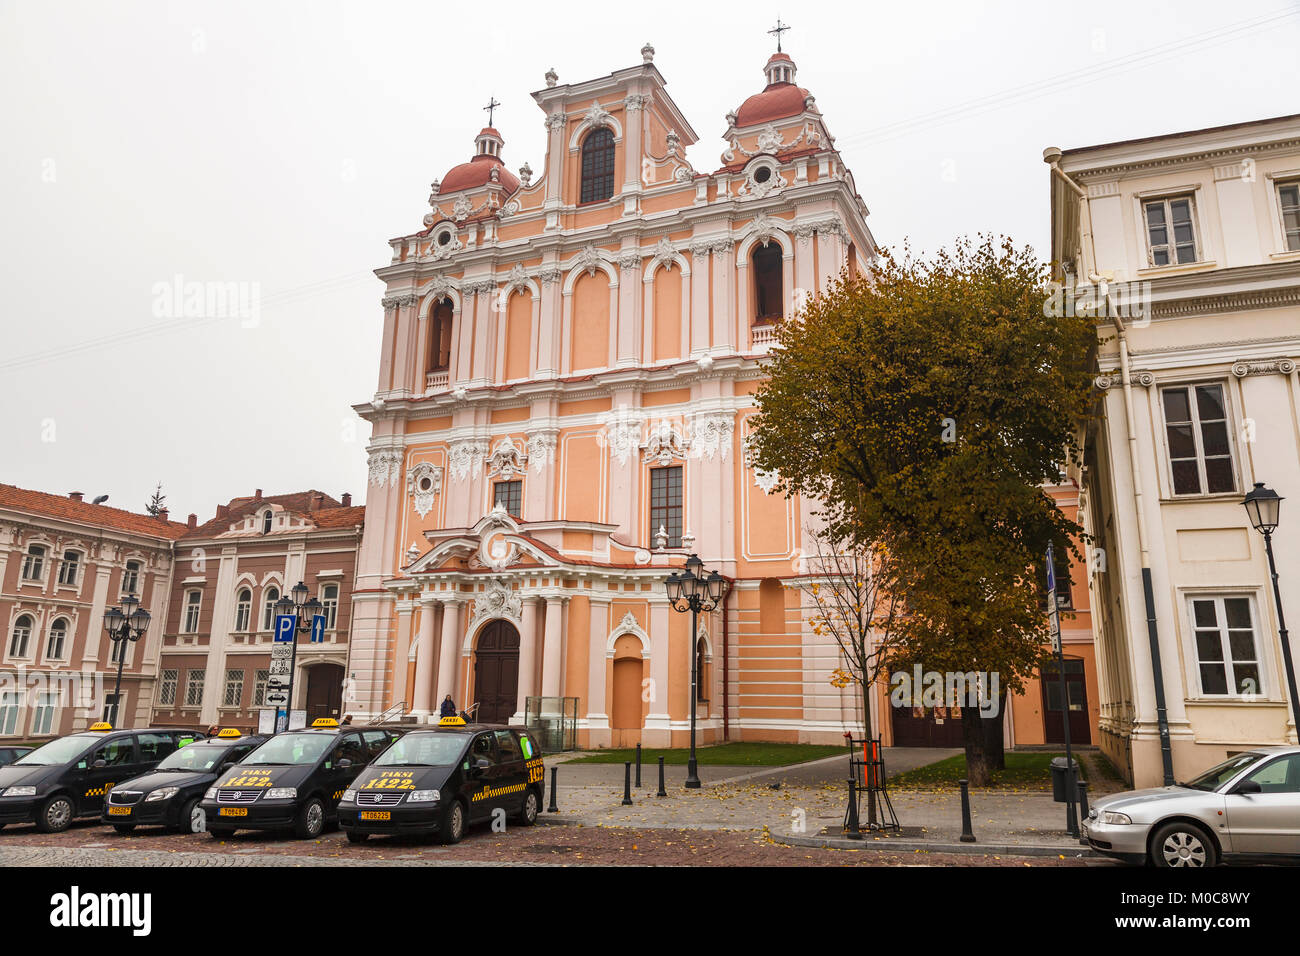 Colourful baroque Roman Catholic Church of St. Casimir, Vilnius Old Town, capital city of Lithuania, eastern Europe - Stock Image